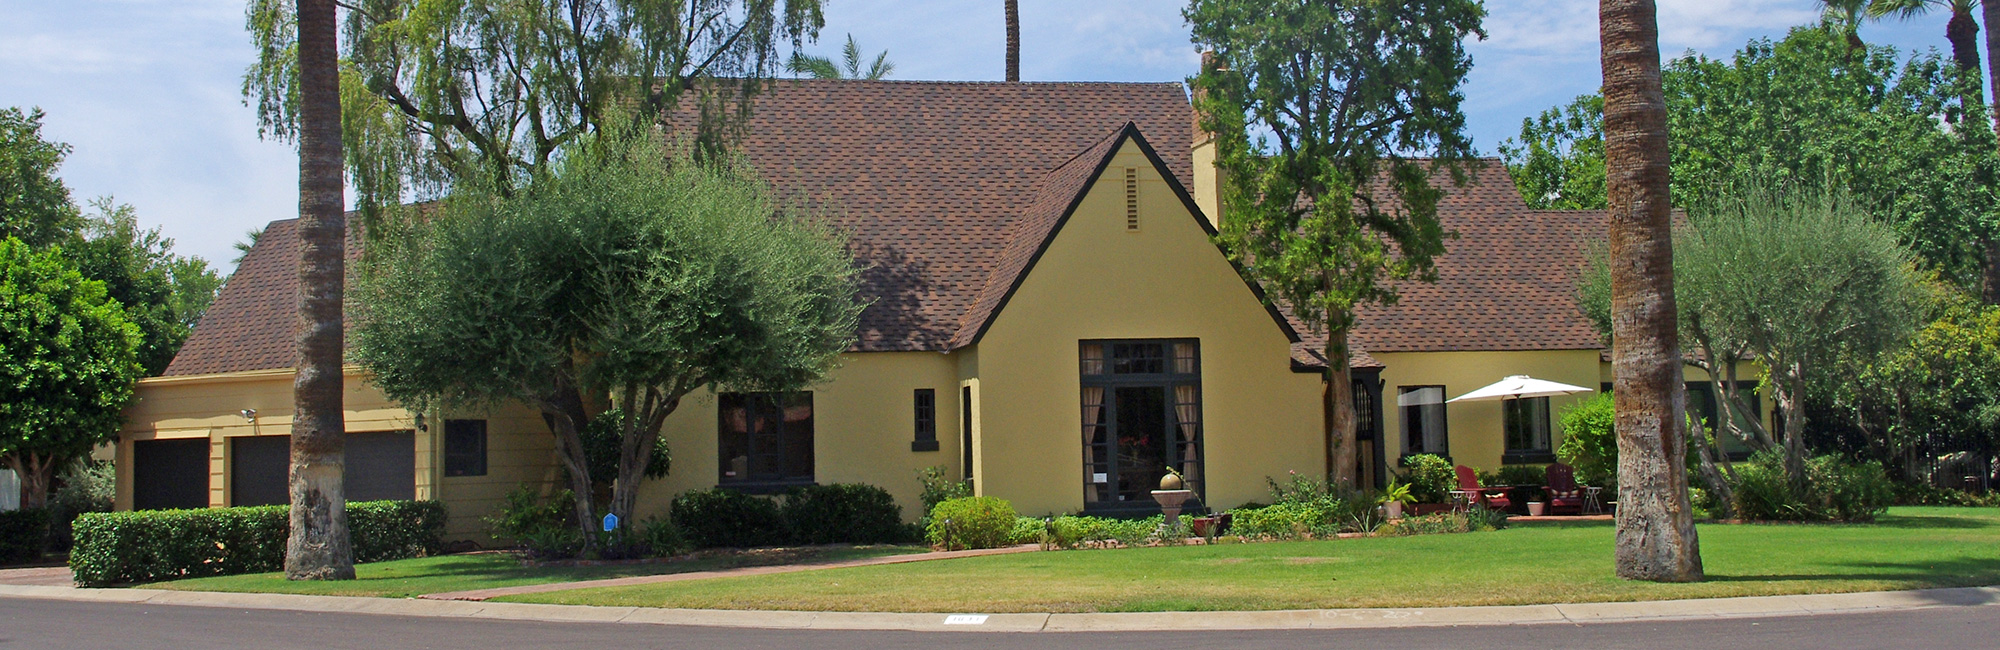 Encanto-Palmcroft Historic District of Phoenix